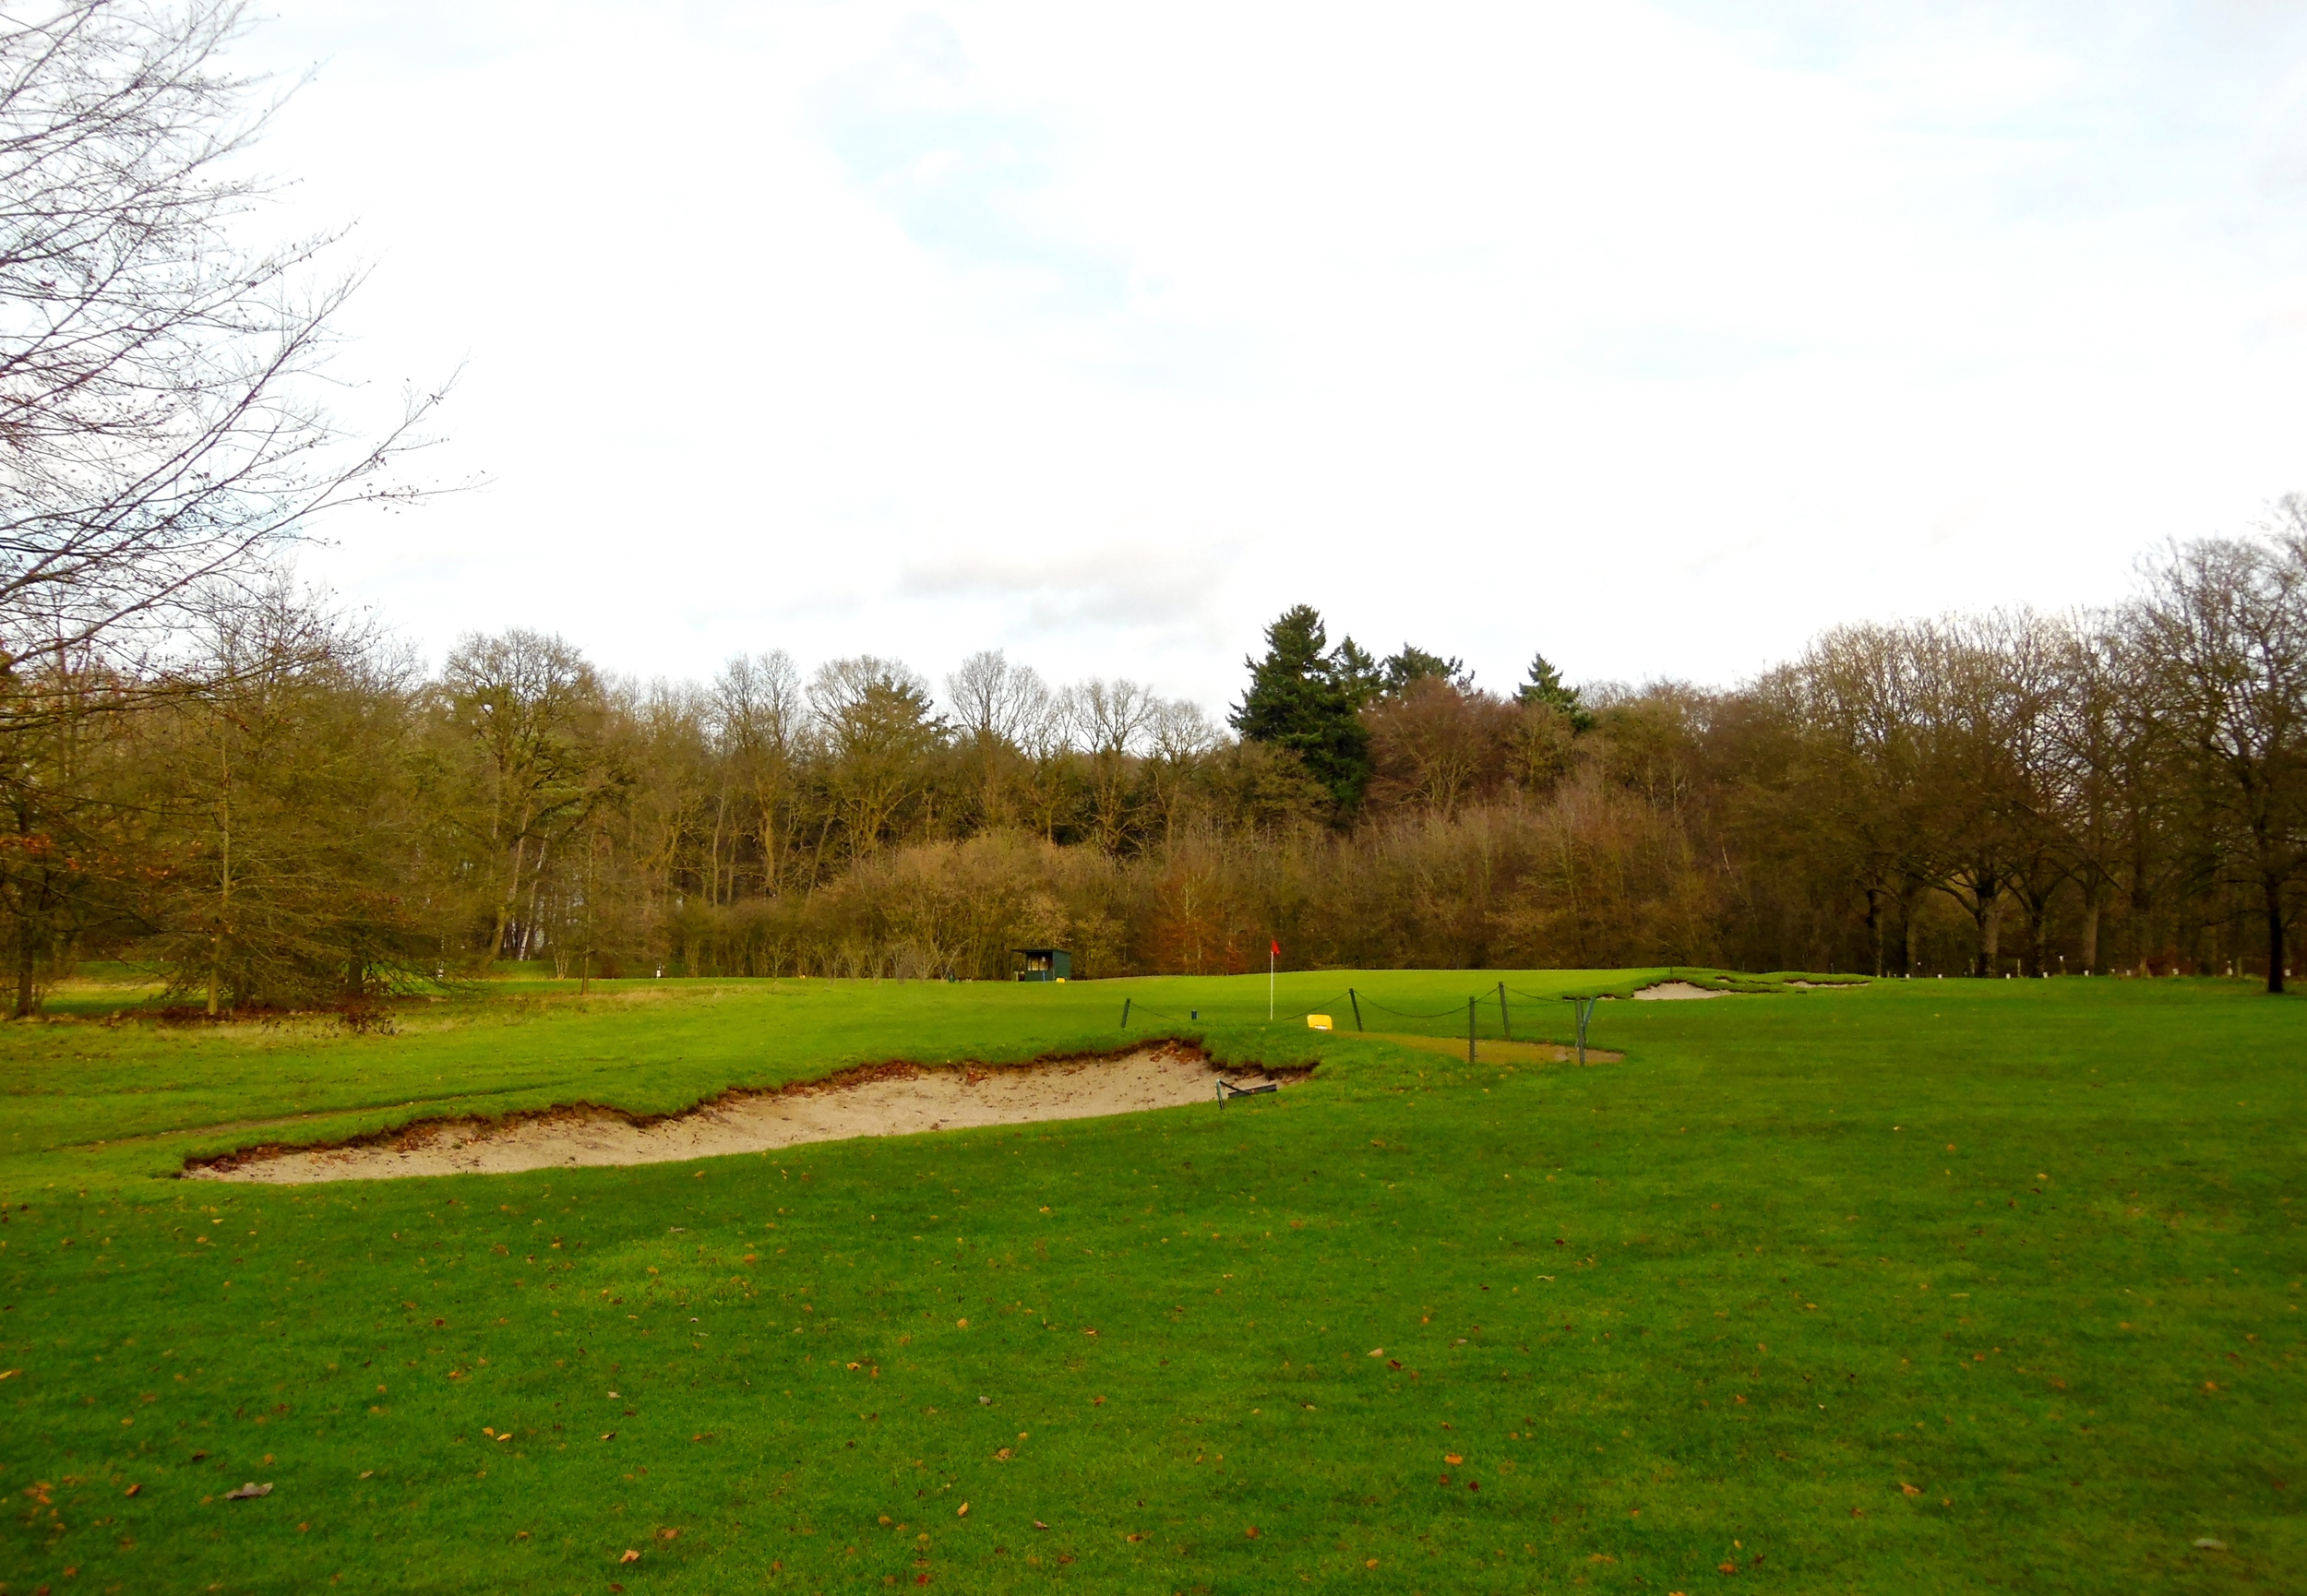 This image shows how the ideal angle of approach is guarded by this bunker in the ridge.